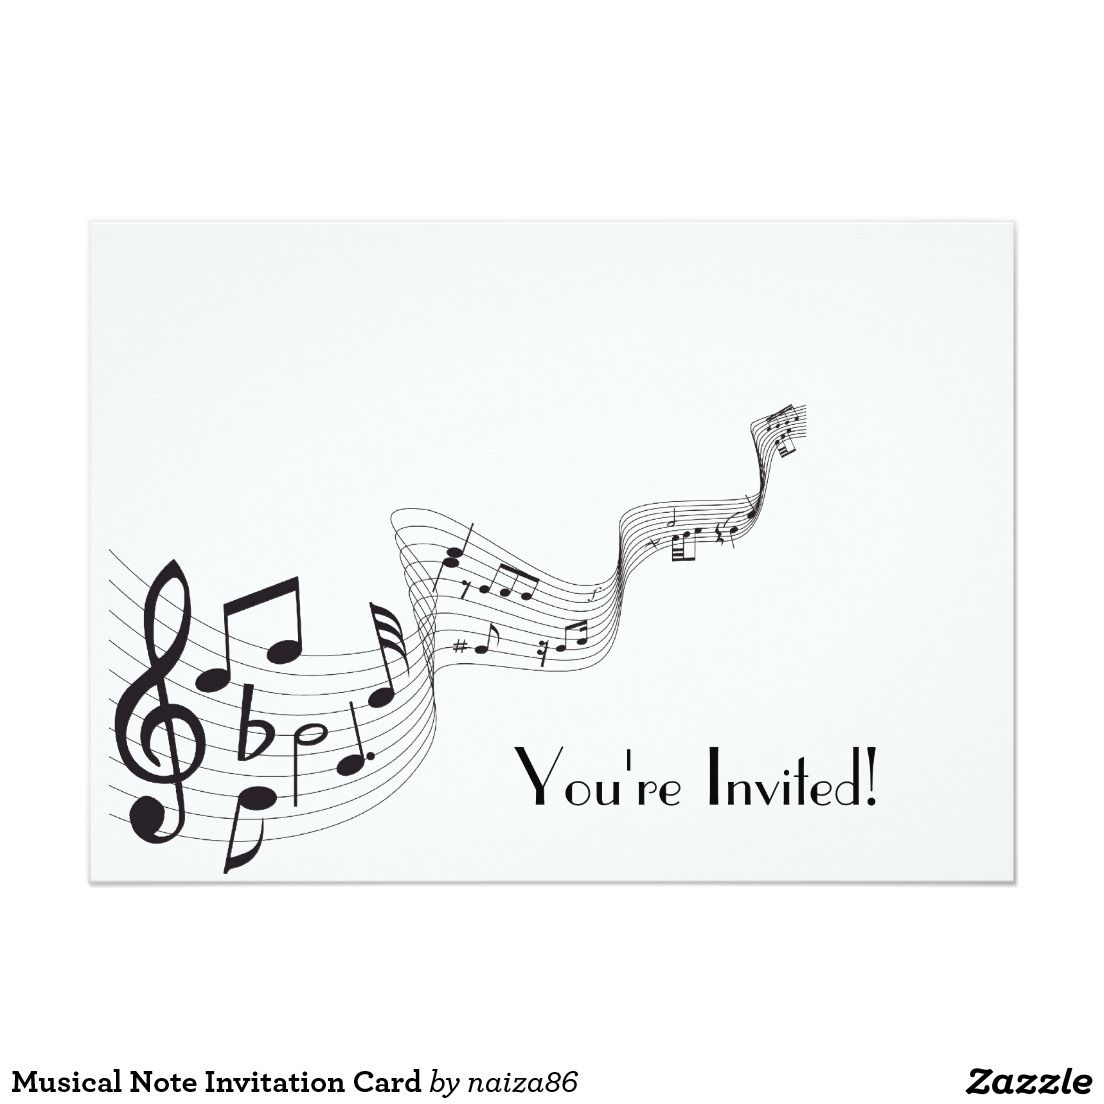 Musical Note Invitation Card Pinterest Computer Geek Circuit Board Green Magnetic Picture Frame Zazzle 5 X 7